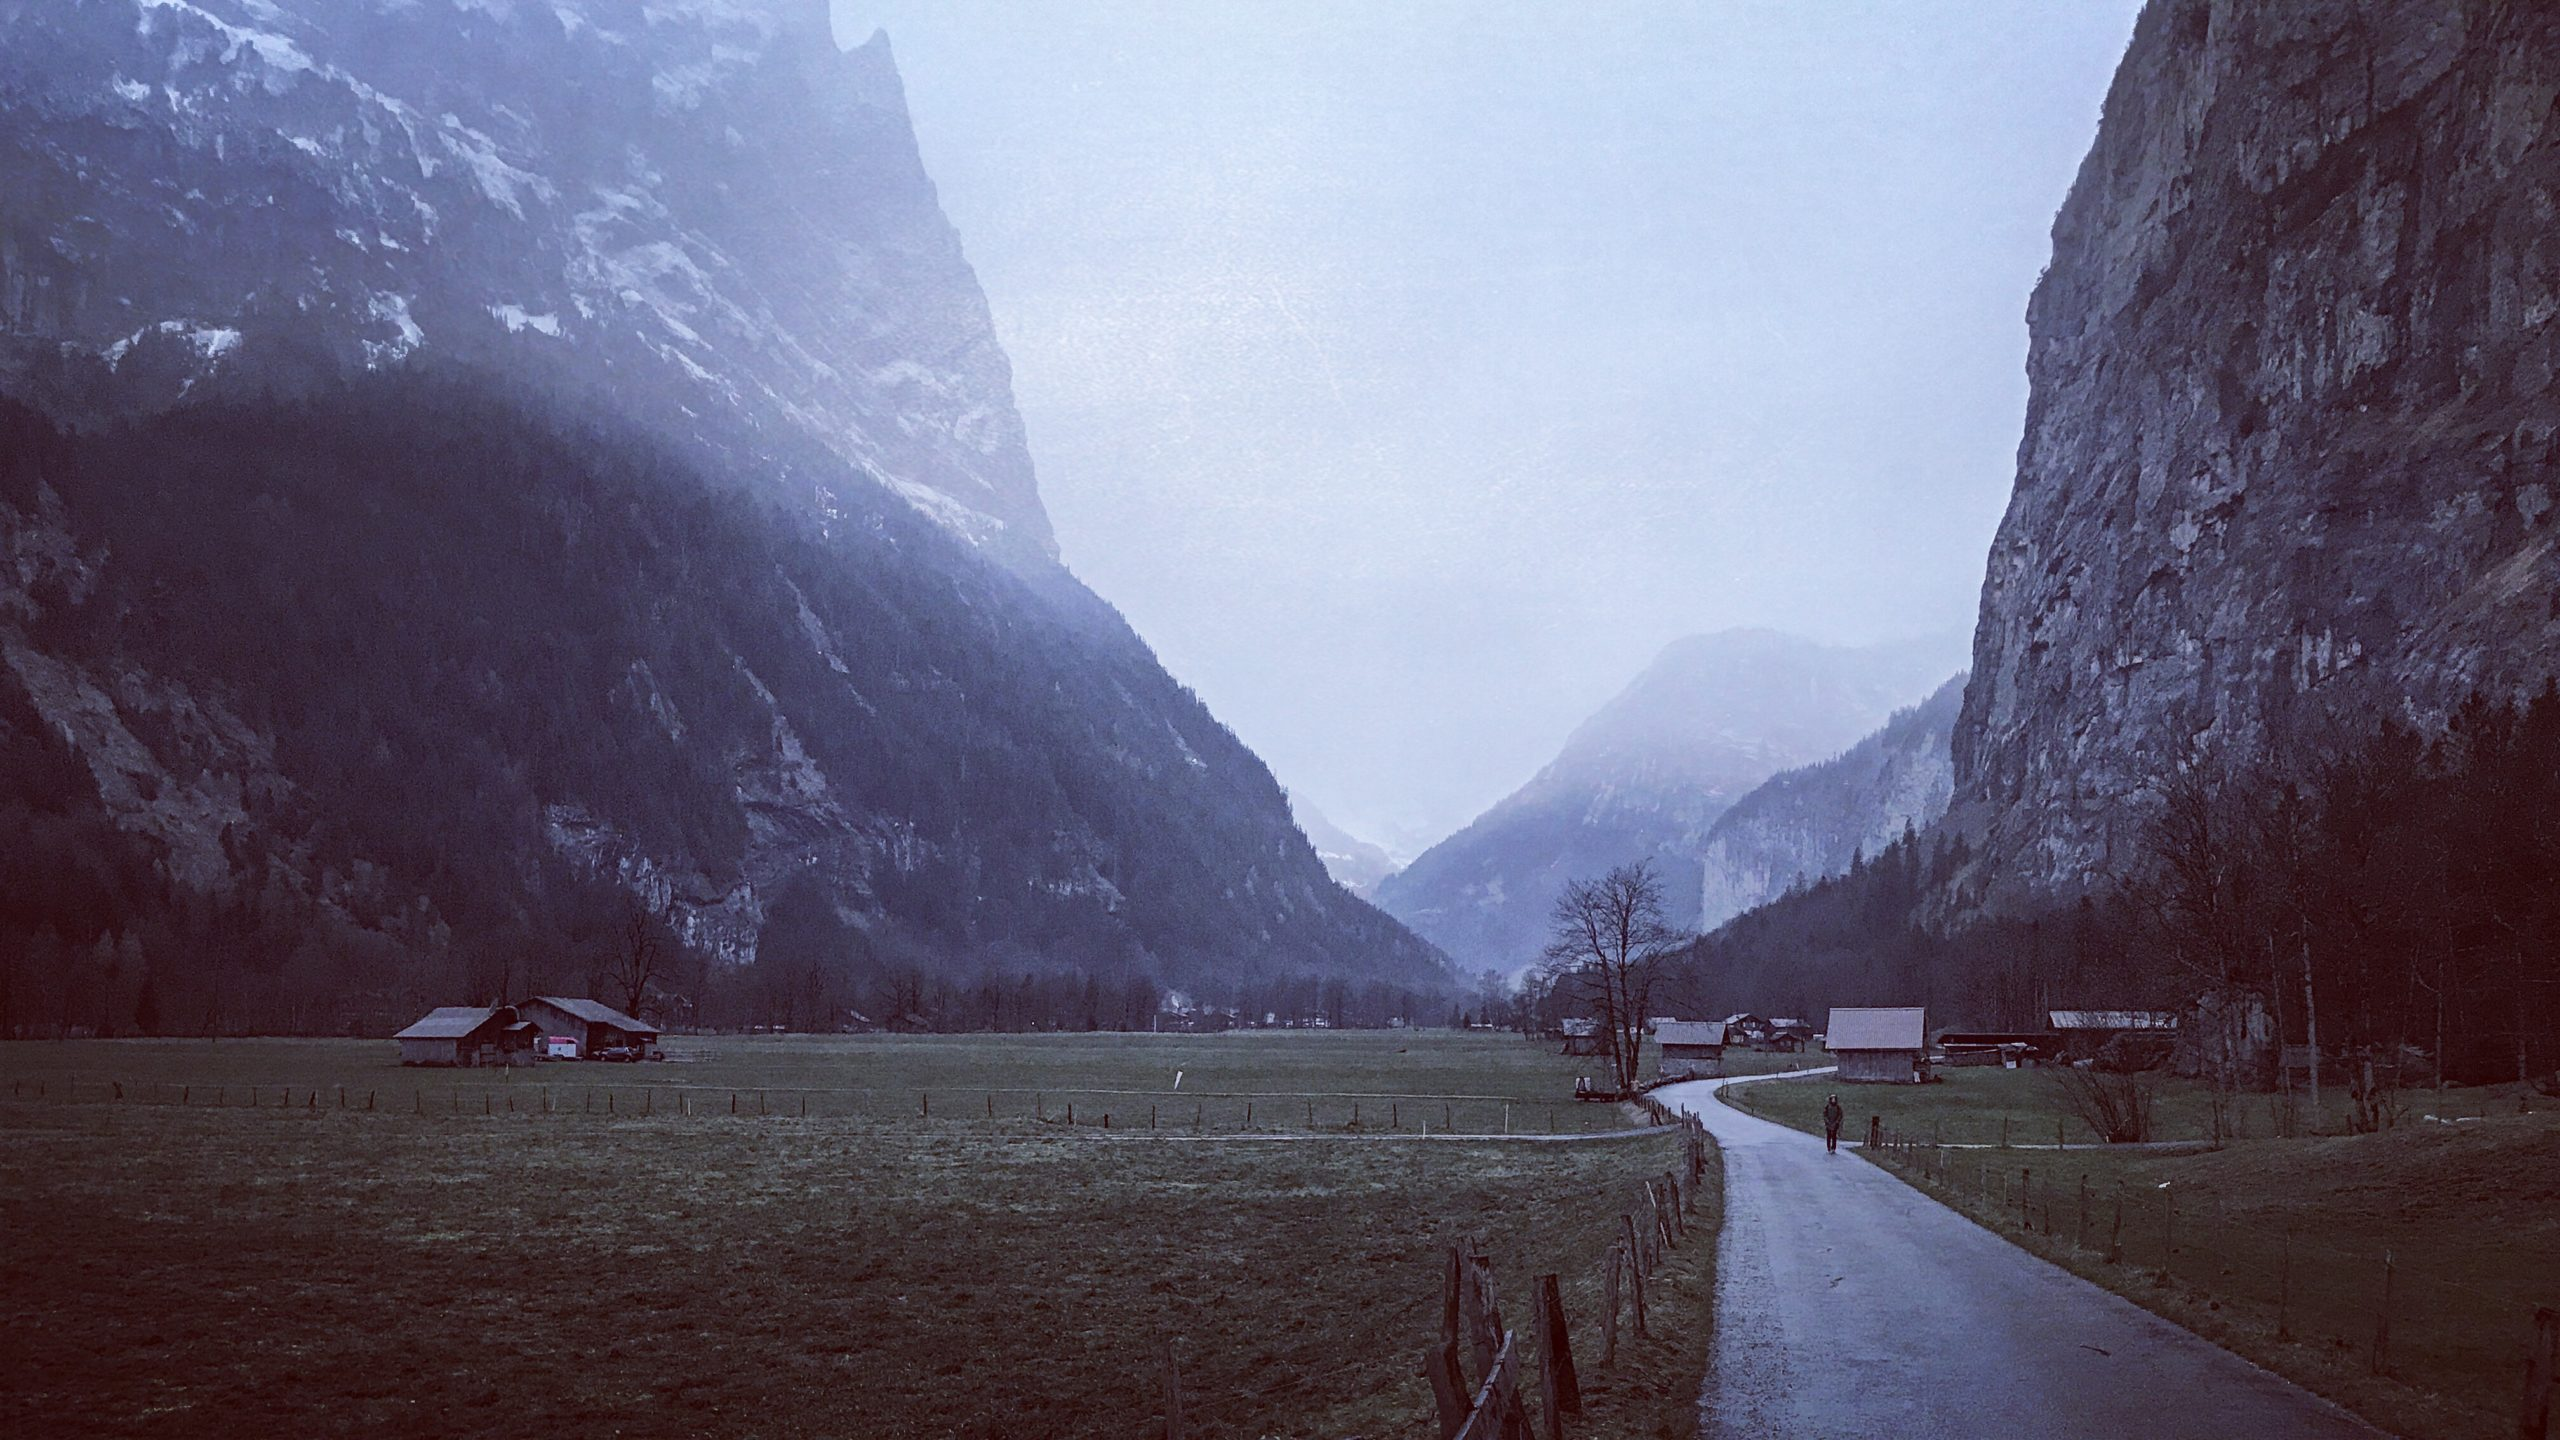 Murky weather in the Lauterbrunnen Valley